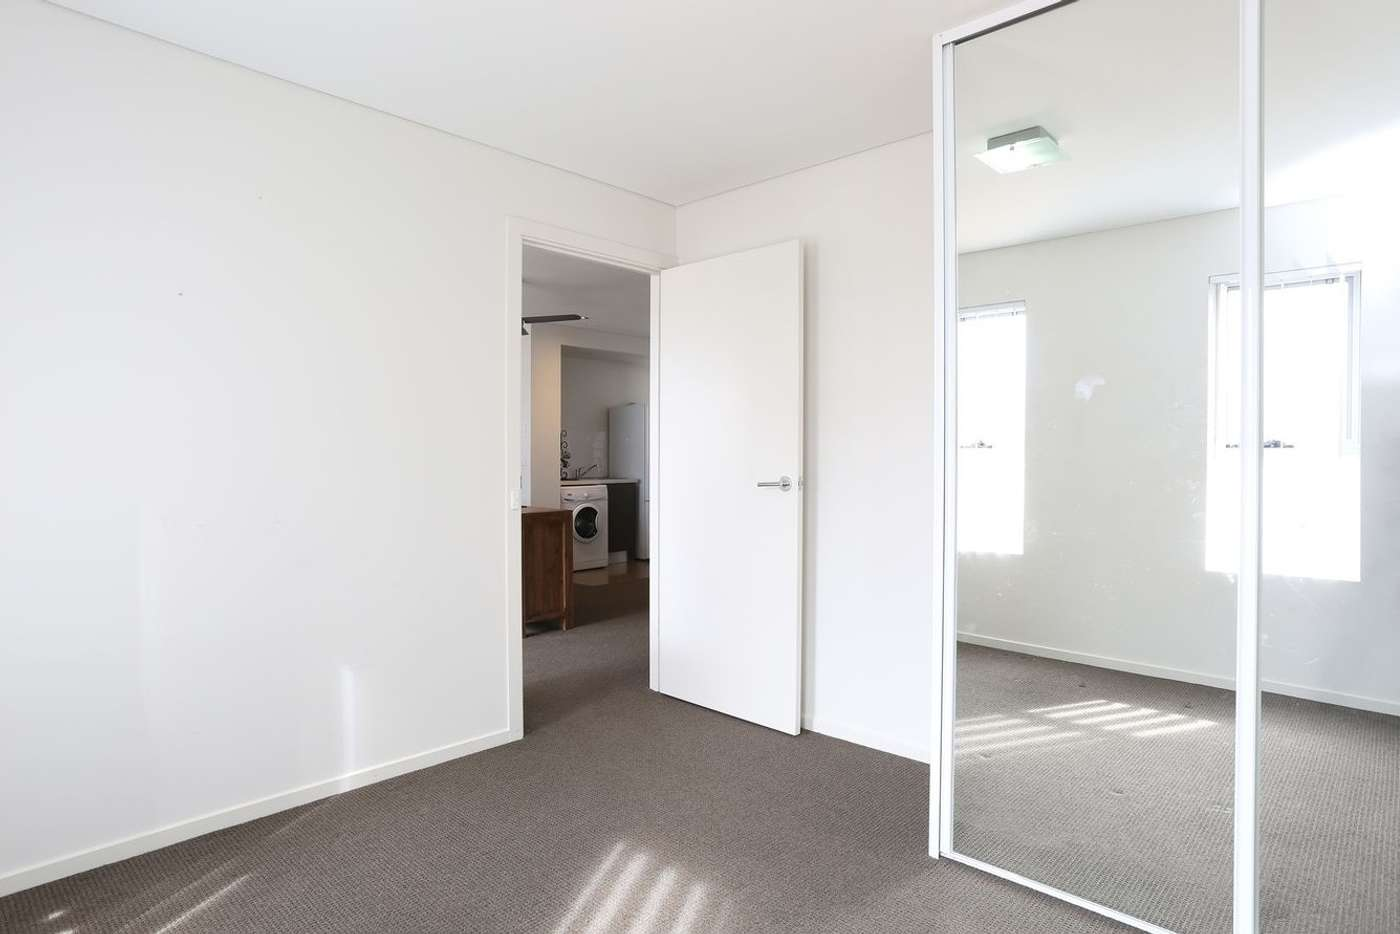 Sixth view of Homely apartment listing, 13/32-36 RIVERSIDE STREET, Mawson Lakes SA 5095